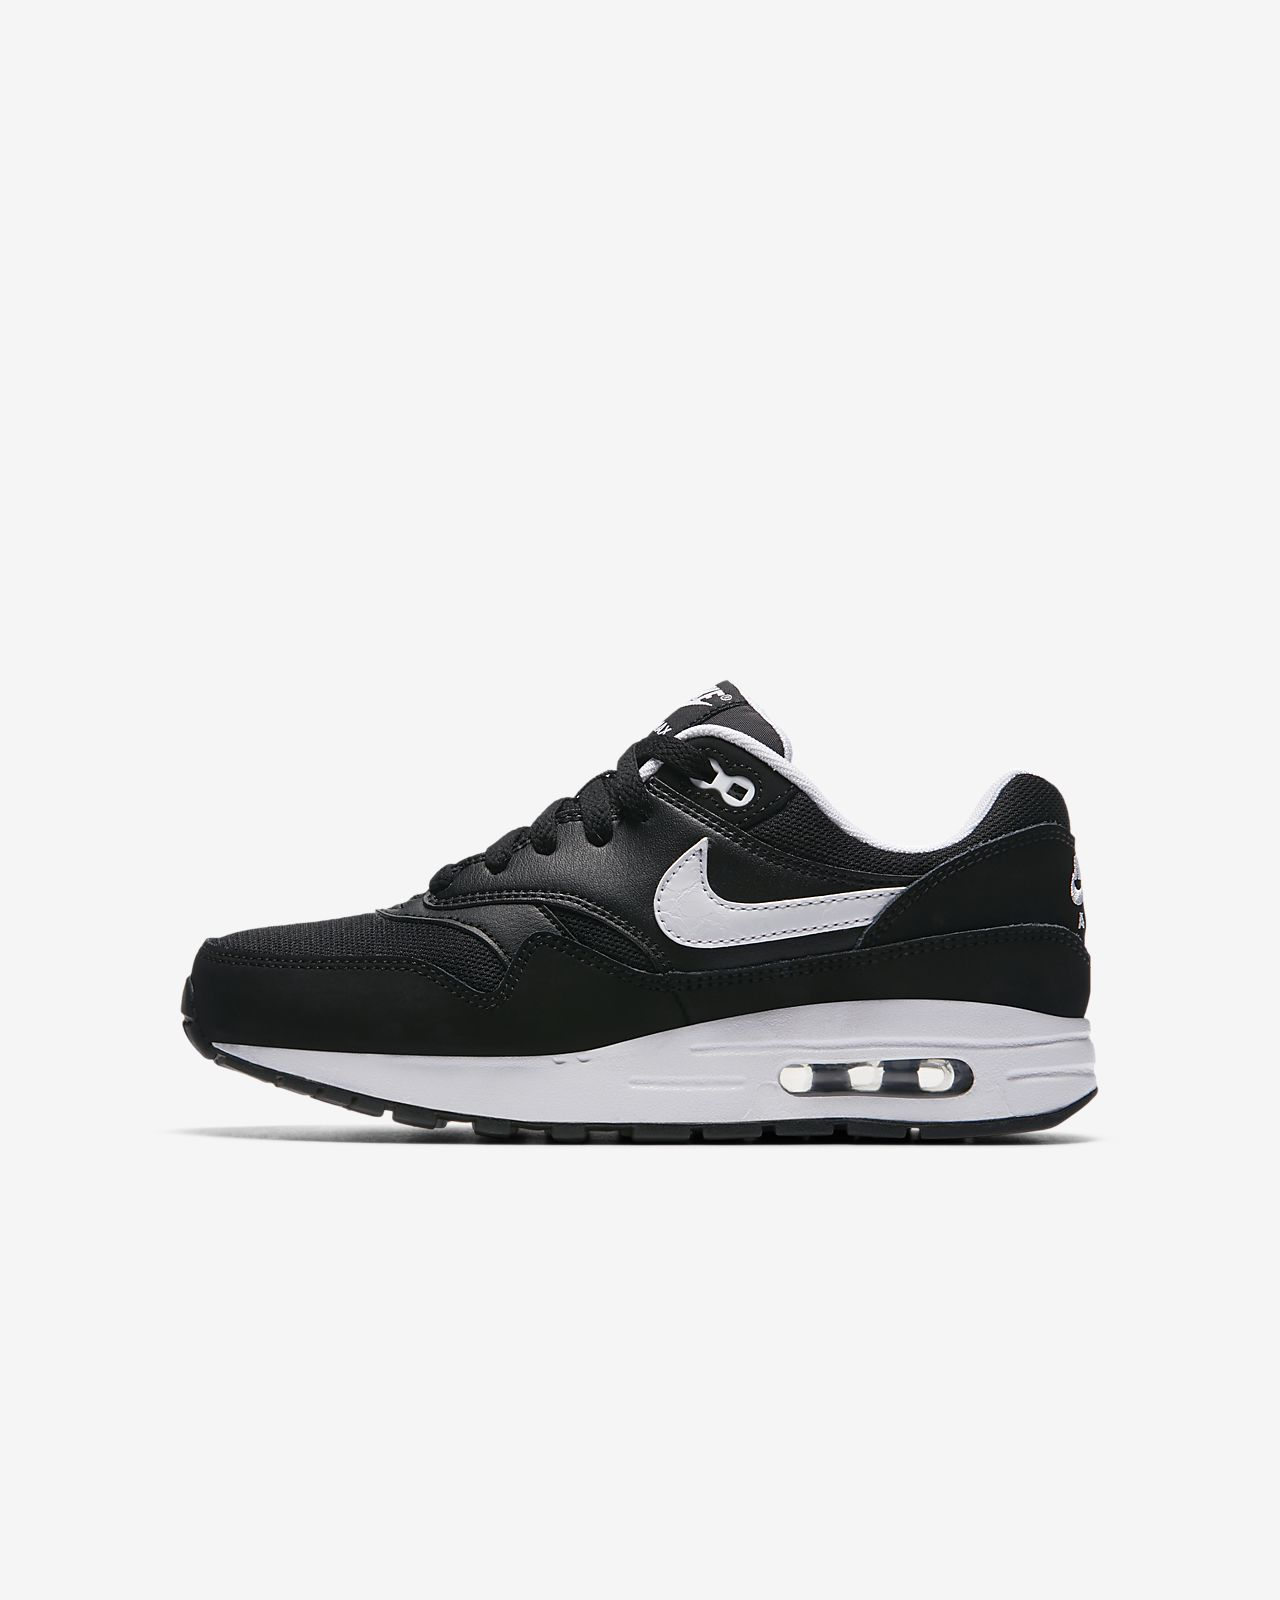 on sale cb1db 52d35 ... Nike Air Max 1 Zapatillas - Niñoa